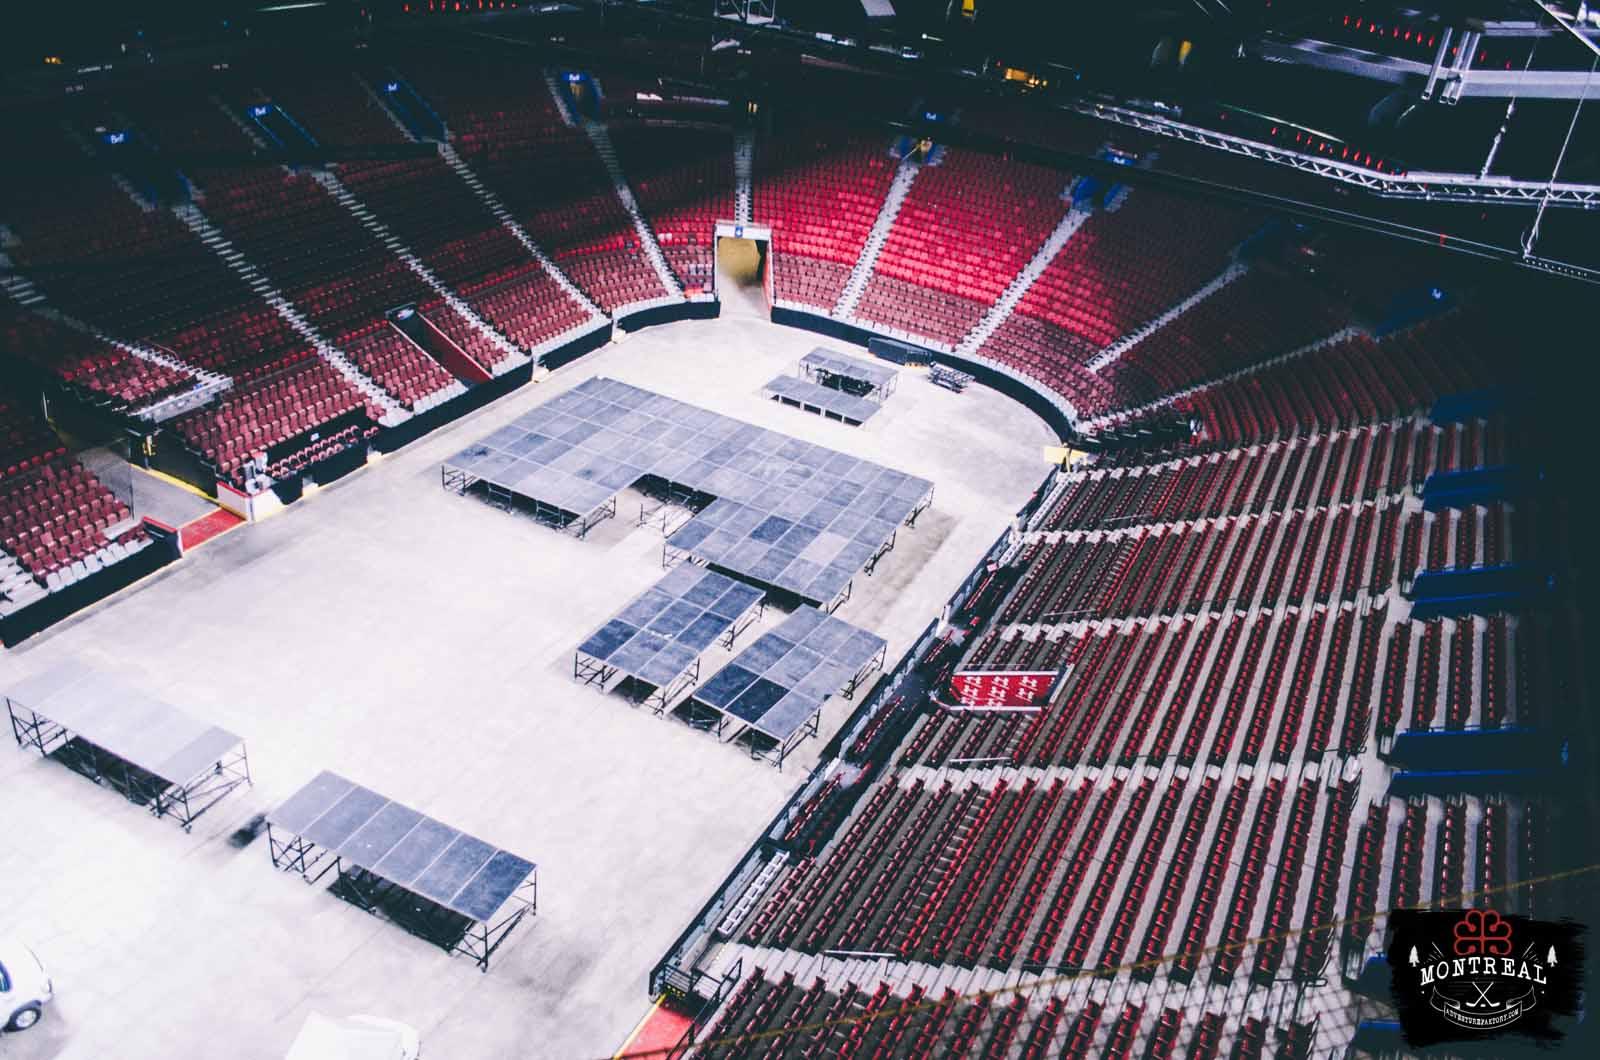 View of the ice from the Media suspended floor. During the summer, the ice isn't done and used for concerts.